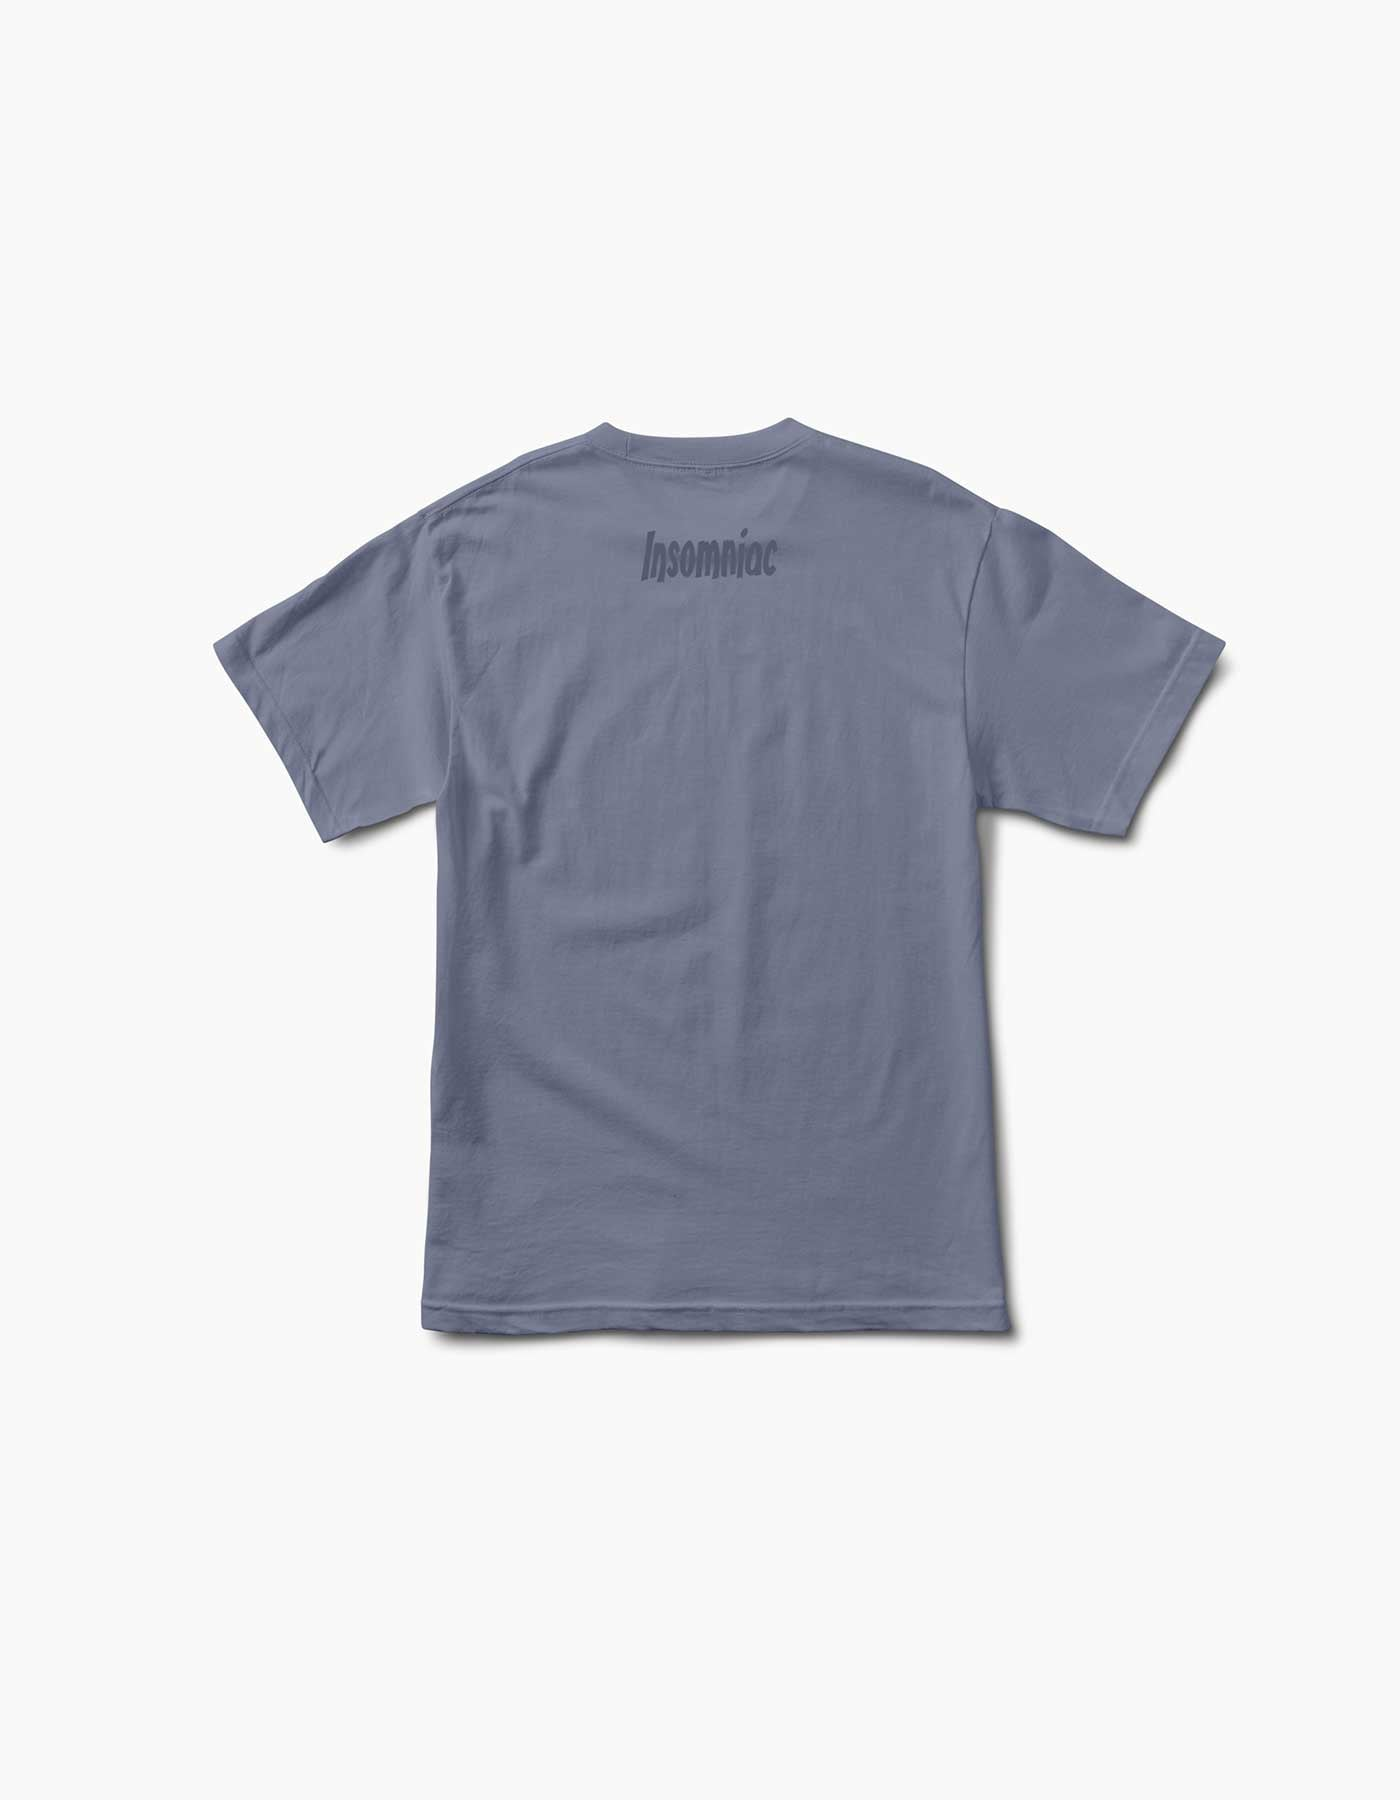 Disinfecto Can S/S Tee Slate